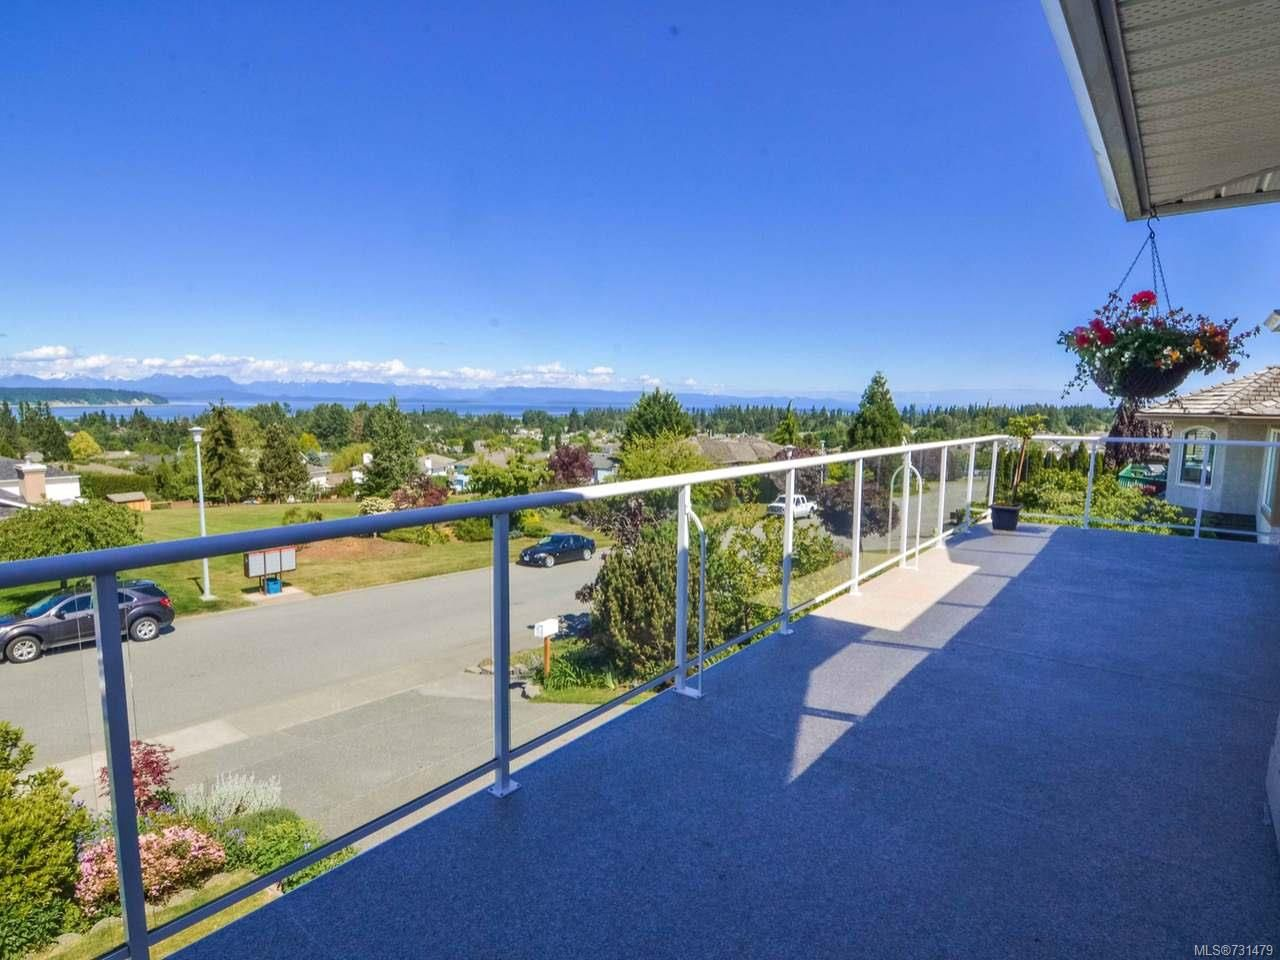 Photo 4: Photos: 753 Bowen Dr in CAMPBELL RIVER: CR Willow Point House for sale (Campbell River)  : MLS®# 731479